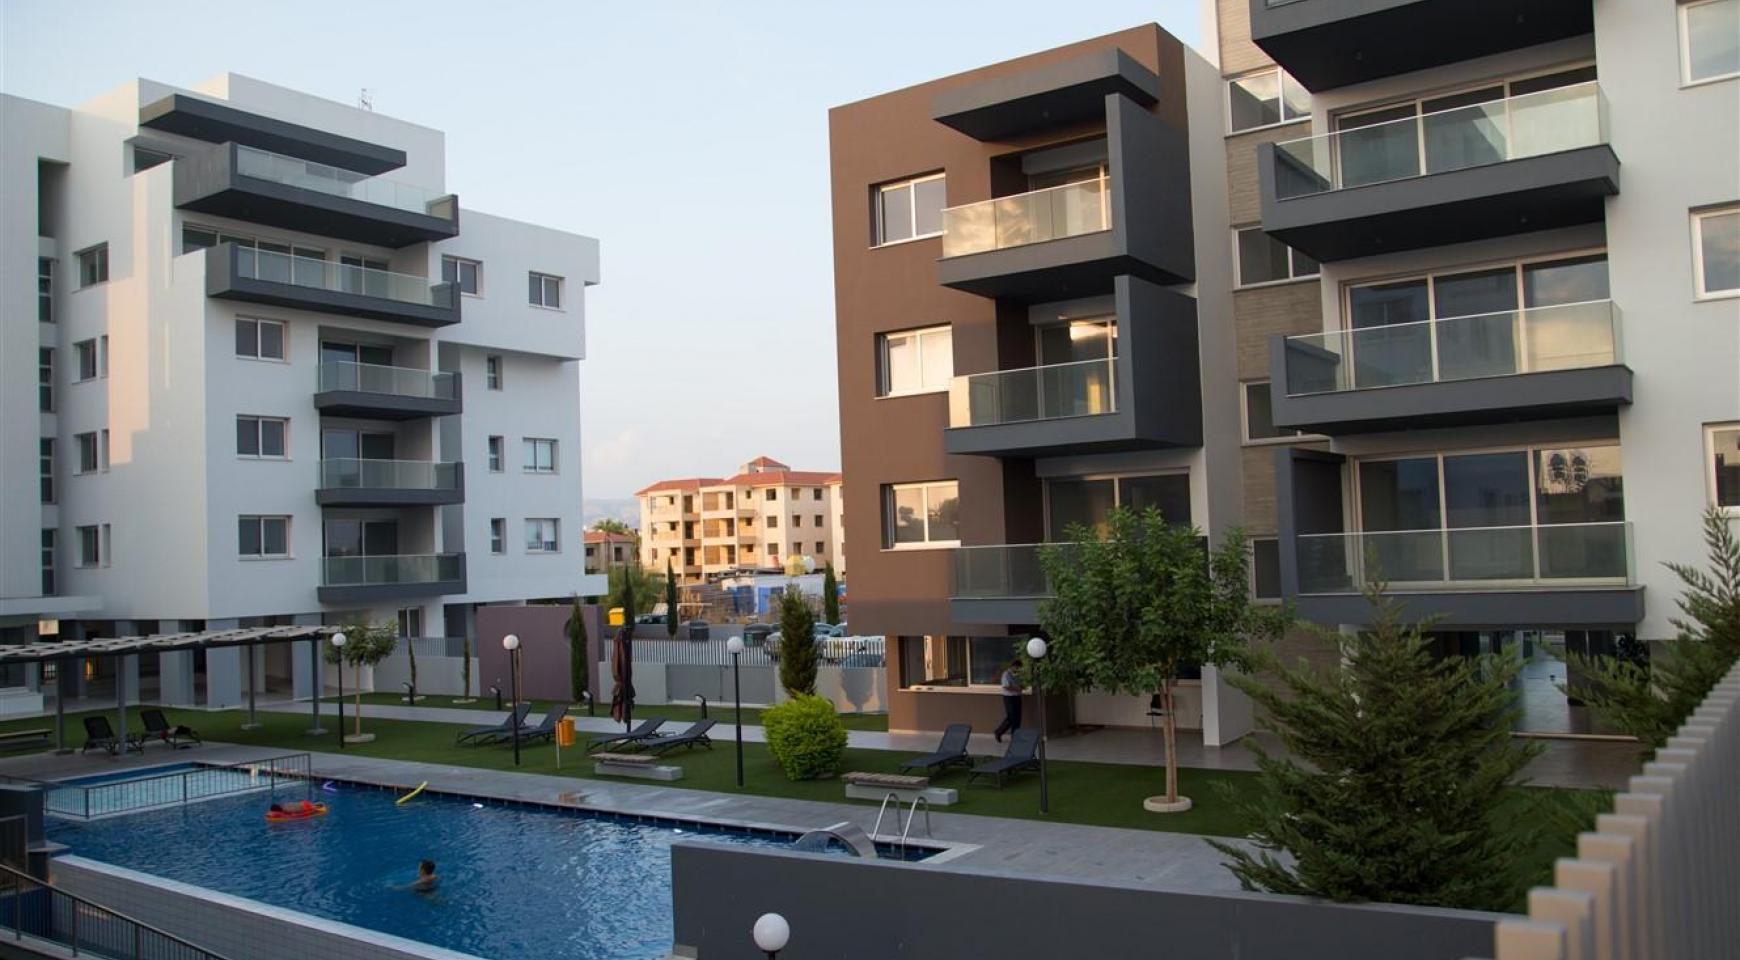 Elite 3 Bedroom Penthouse with private Swimming Pool on the Roof - 12